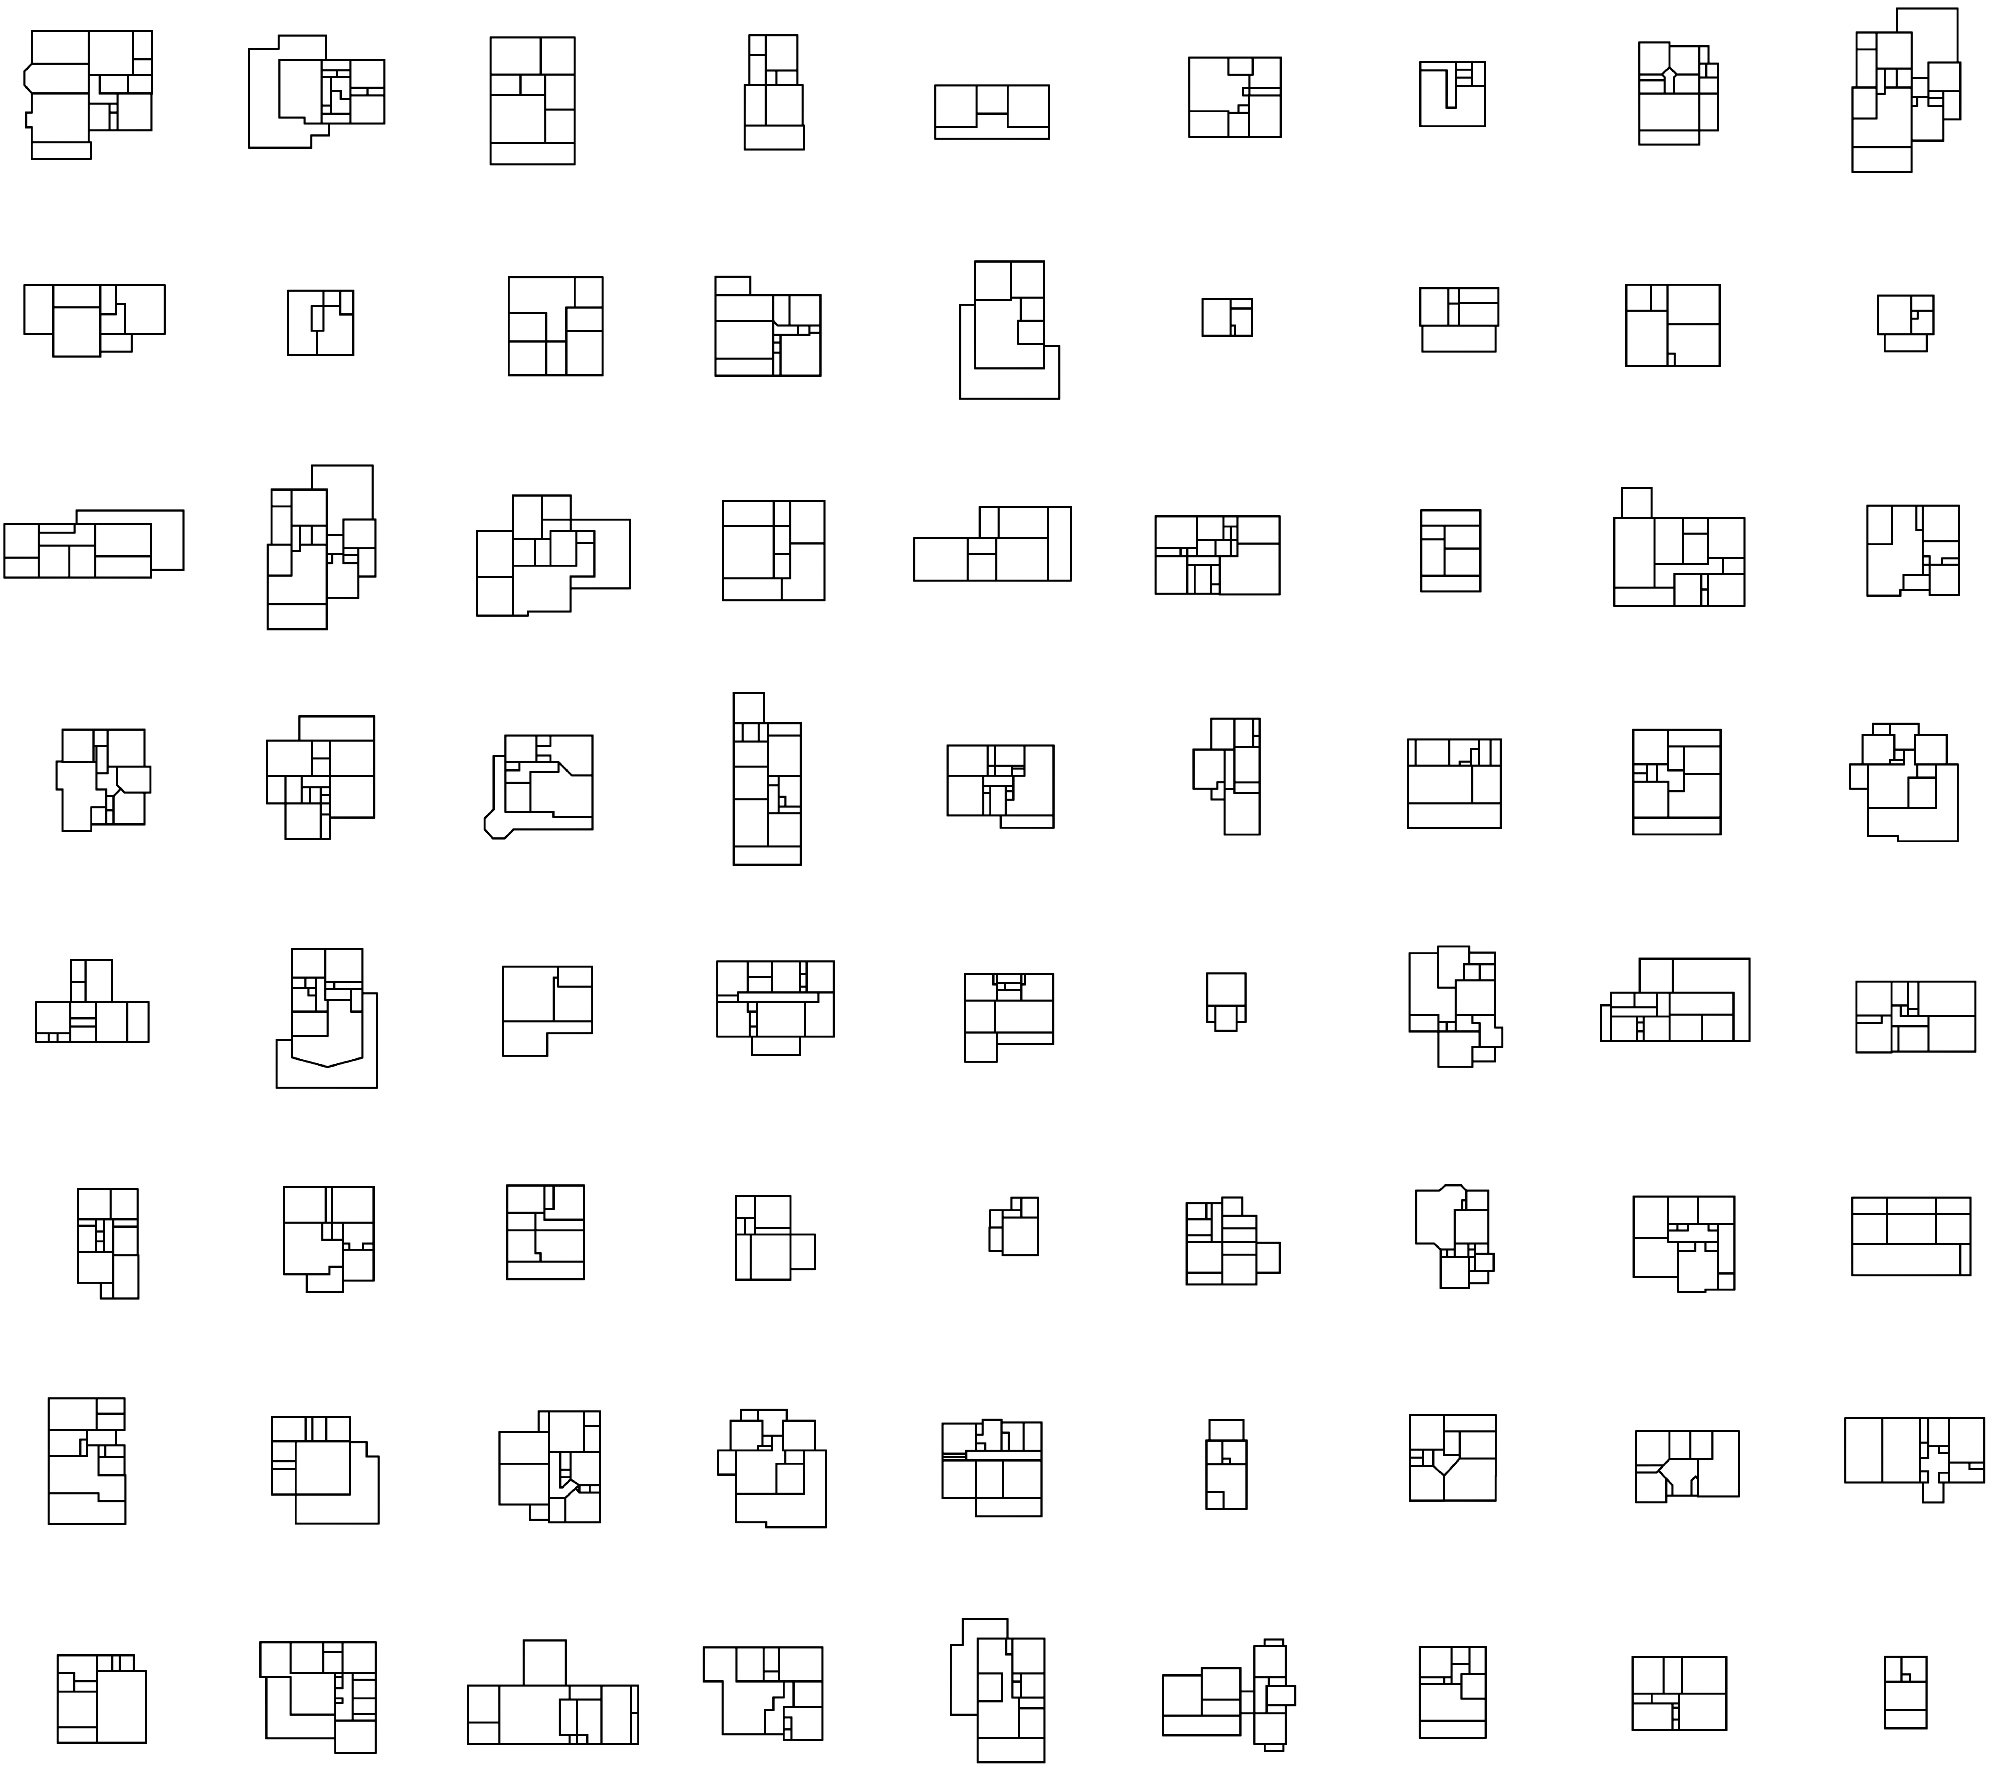 Grid Layout - Outlines.jpg